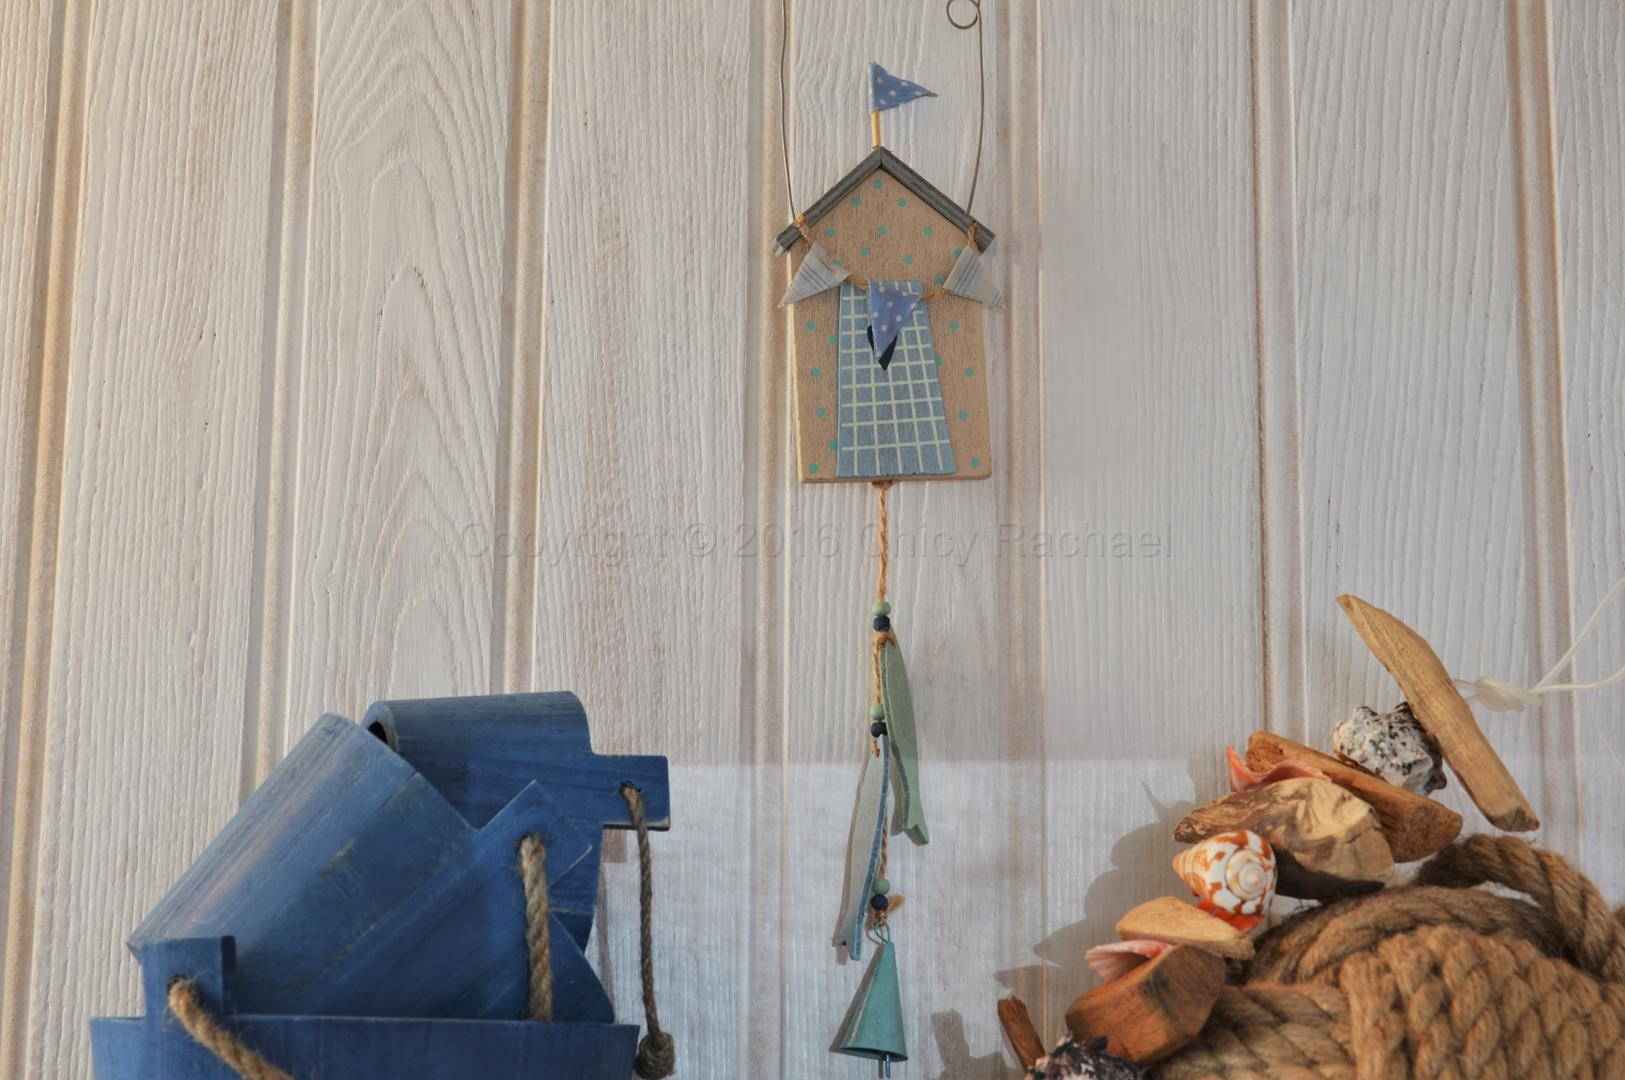 Hanging beach hut and fish decoration chicy rachael for Beach hut decoration ideas